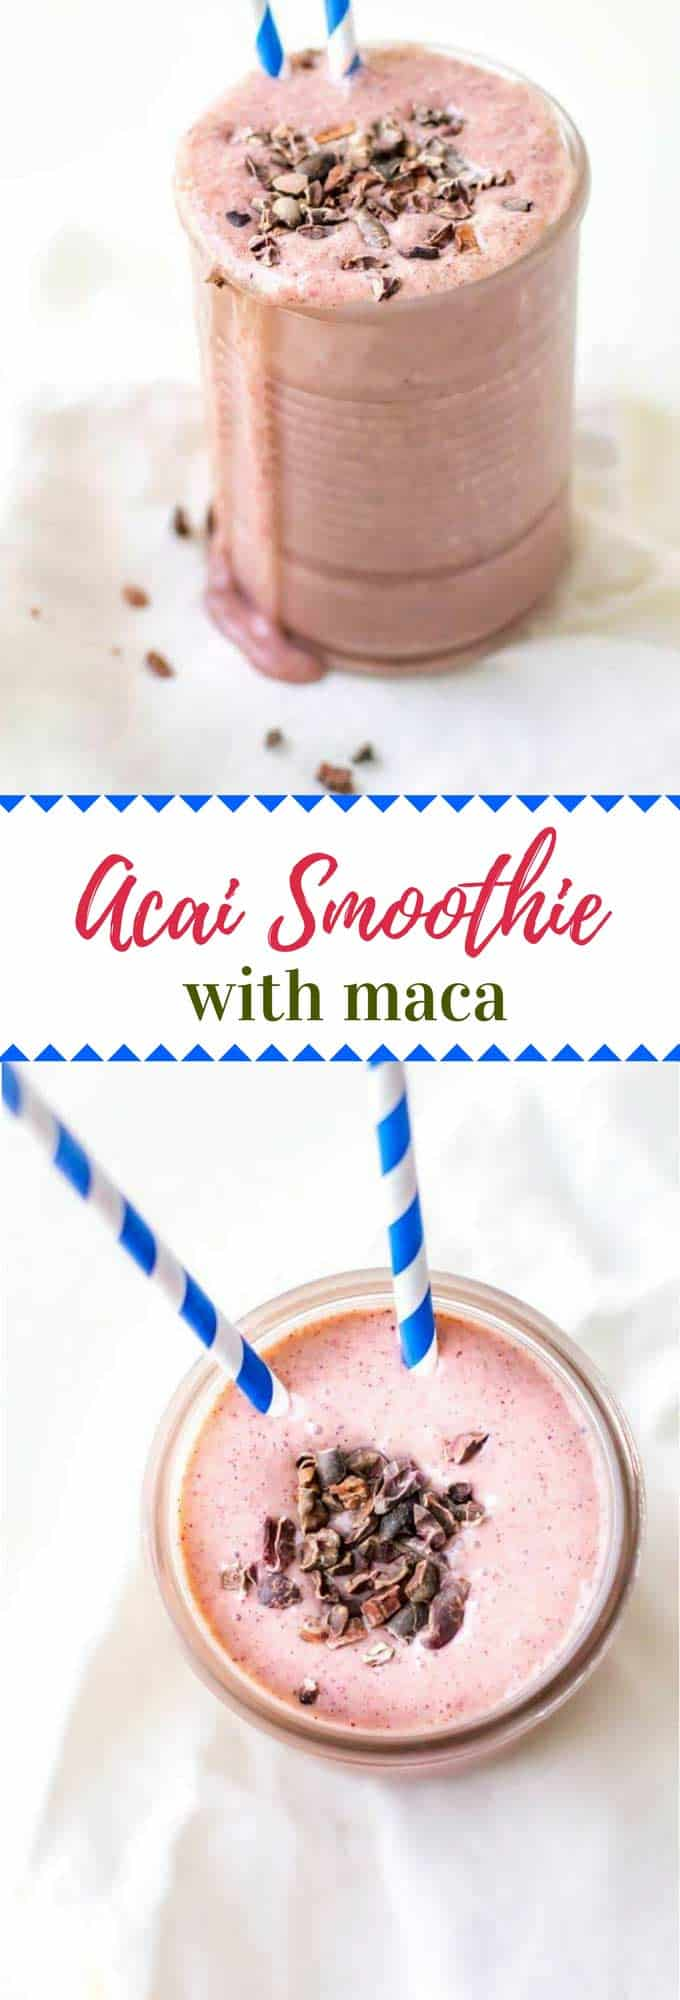 This Acai Smoothie Recipe is a delicious healthy drink that will boost for energy, support your immune system and help with detox.  Made with acai powder, this vegan smoothie is loaded with superfoods.